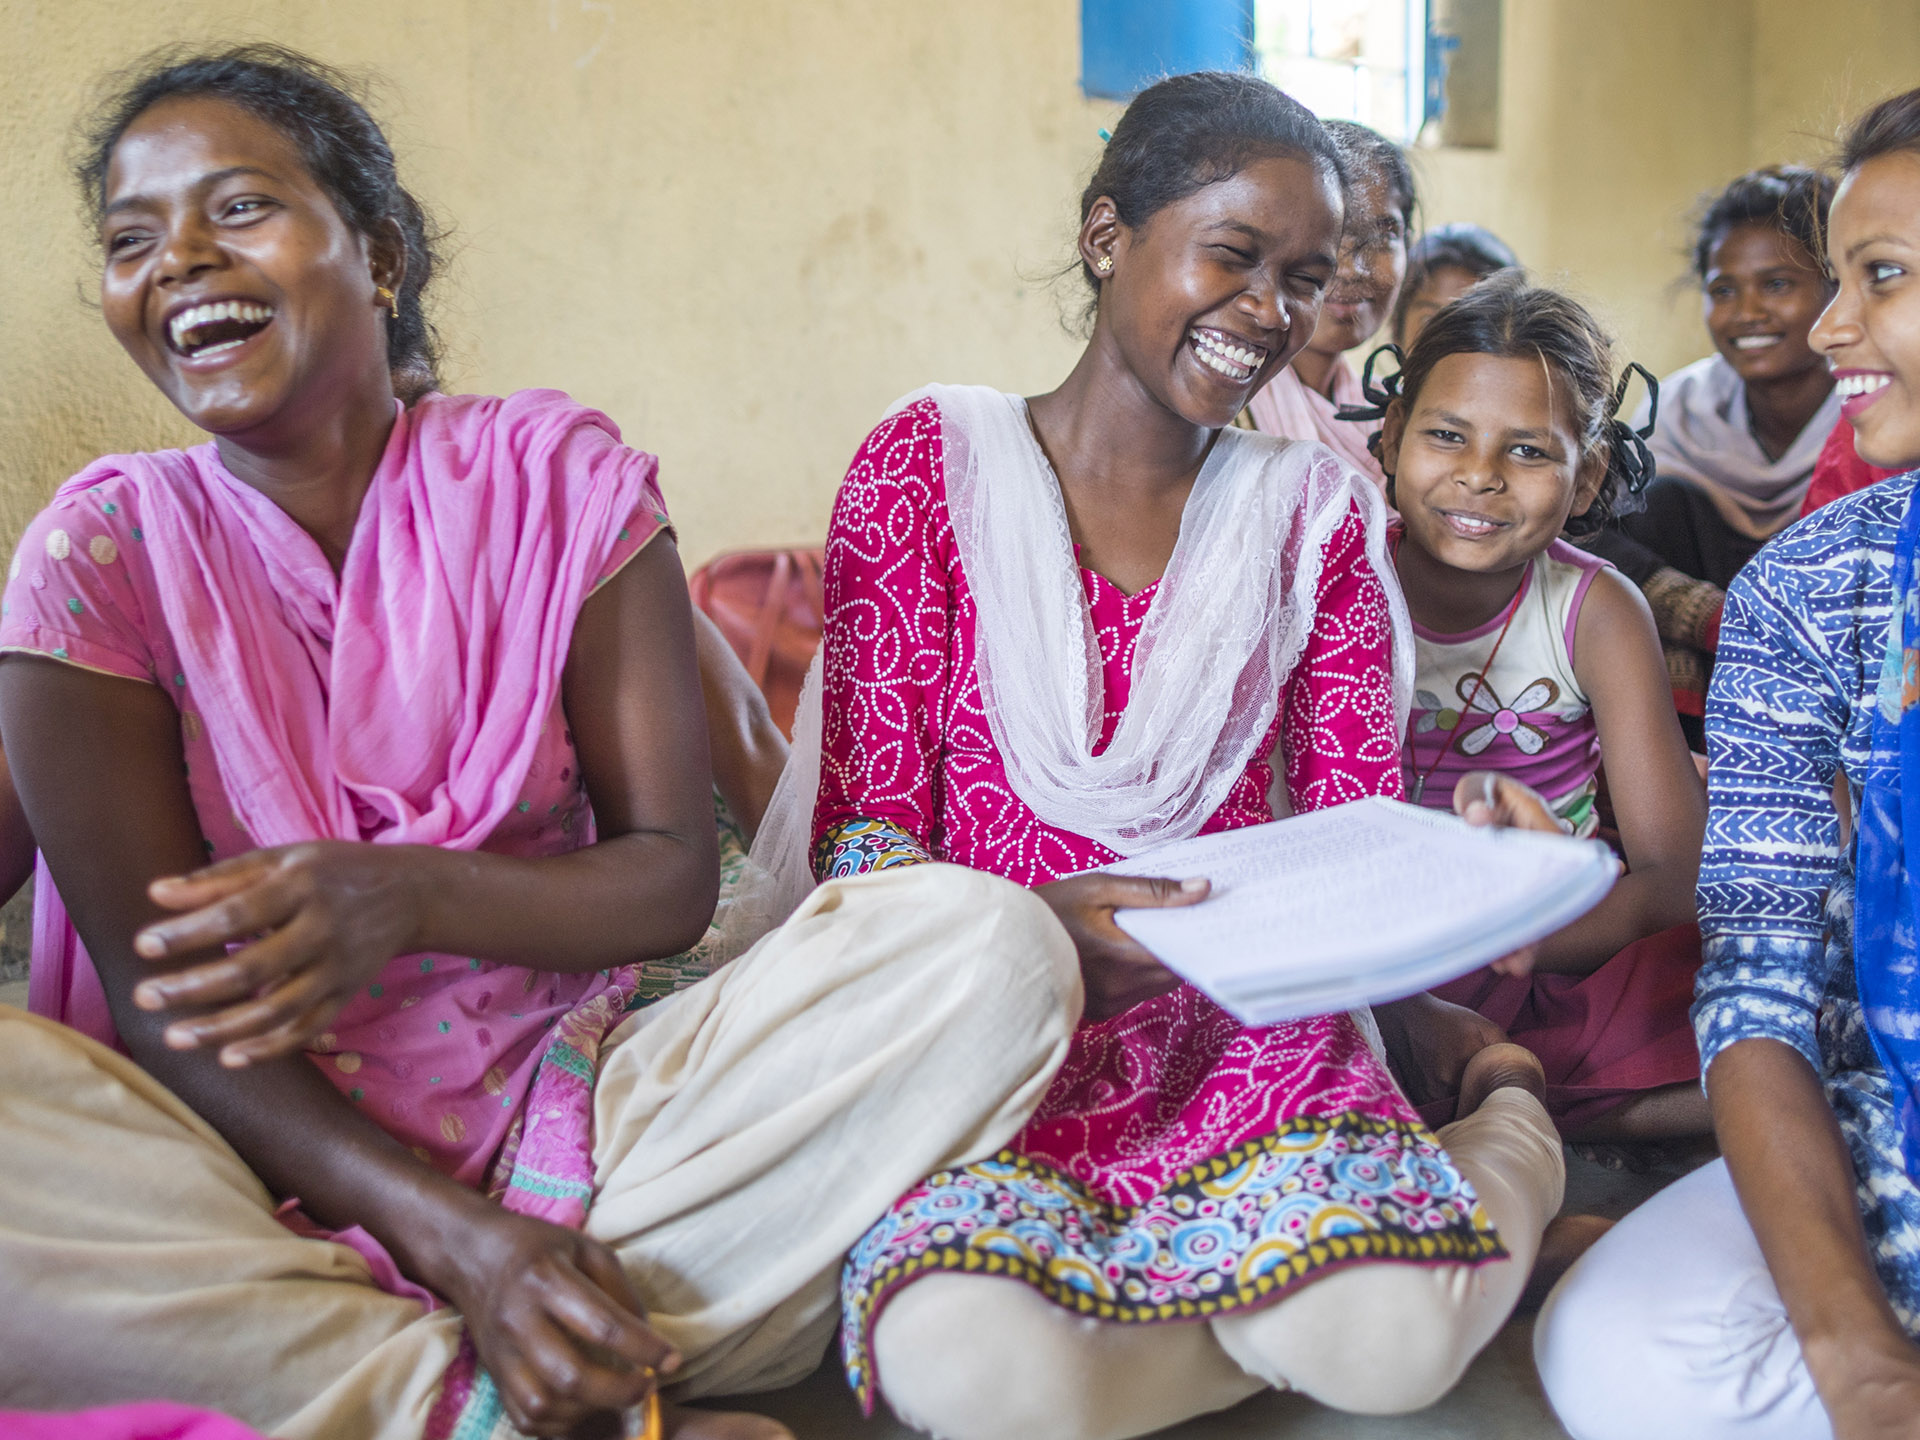 Innovation in menstrual hygiene management